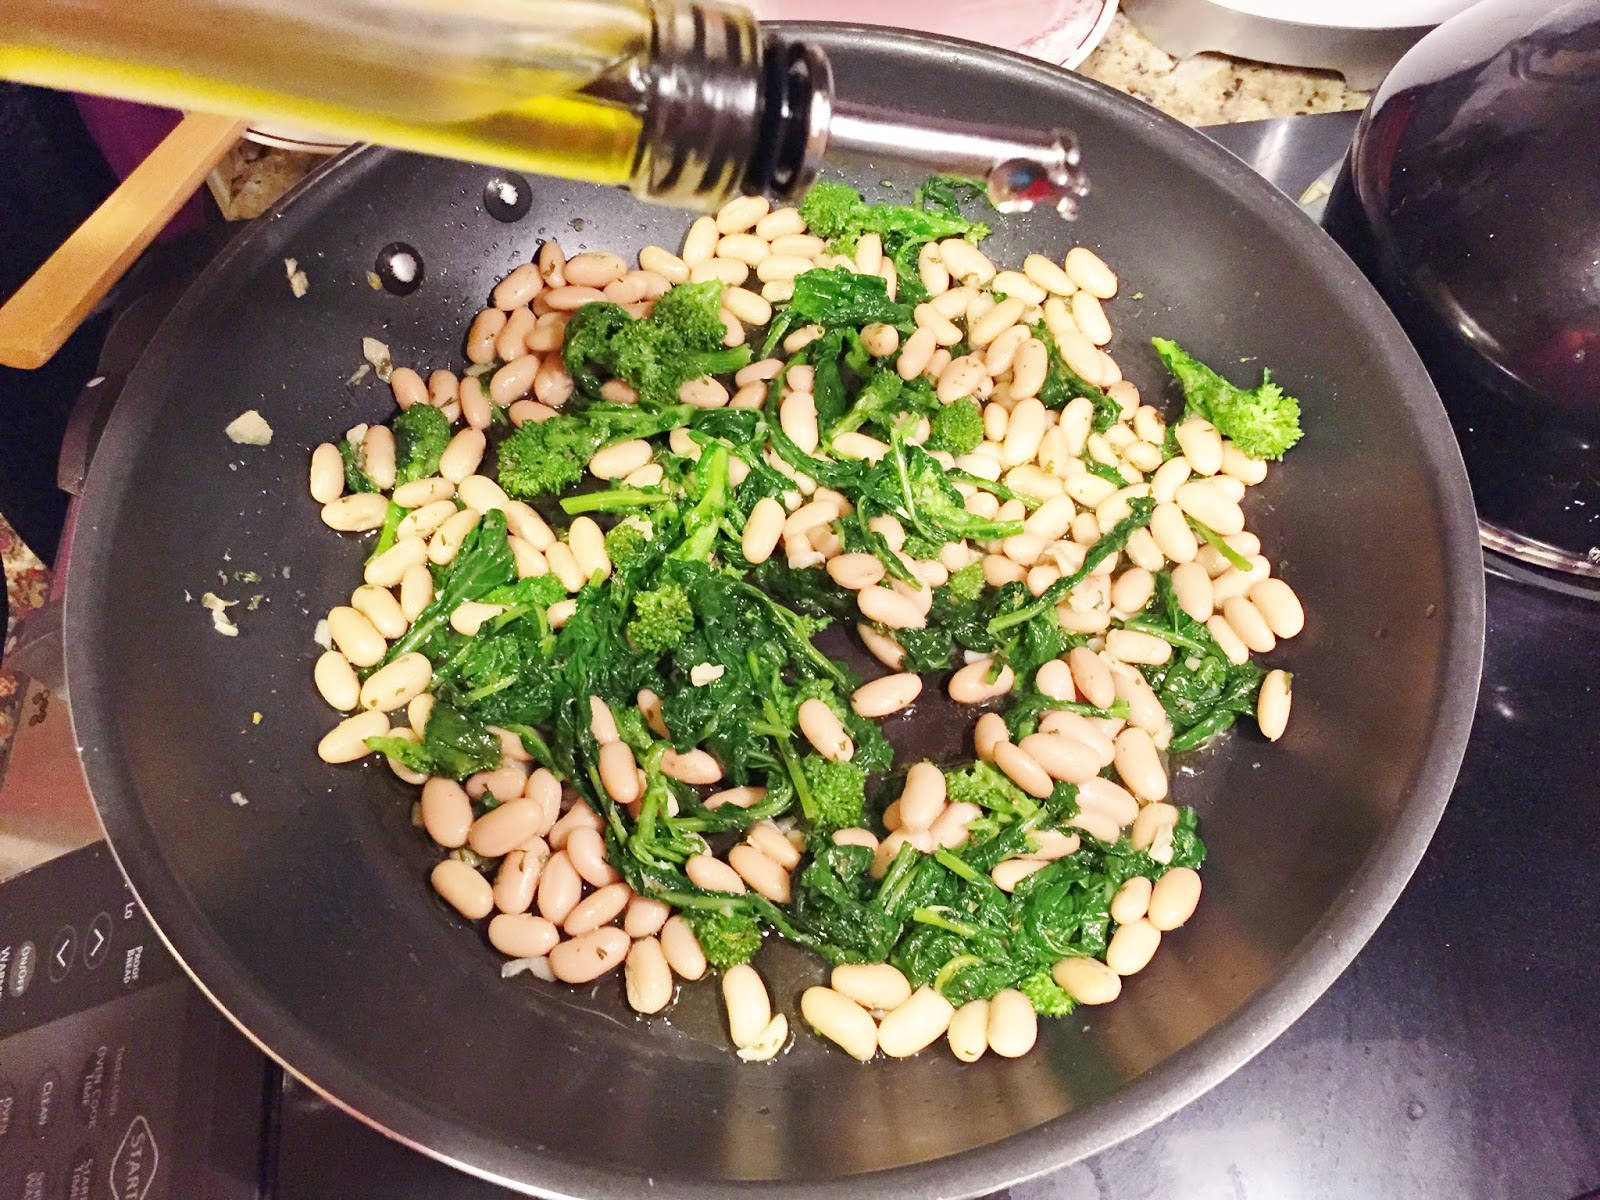 Broccoli Rabi with Cannellini beans